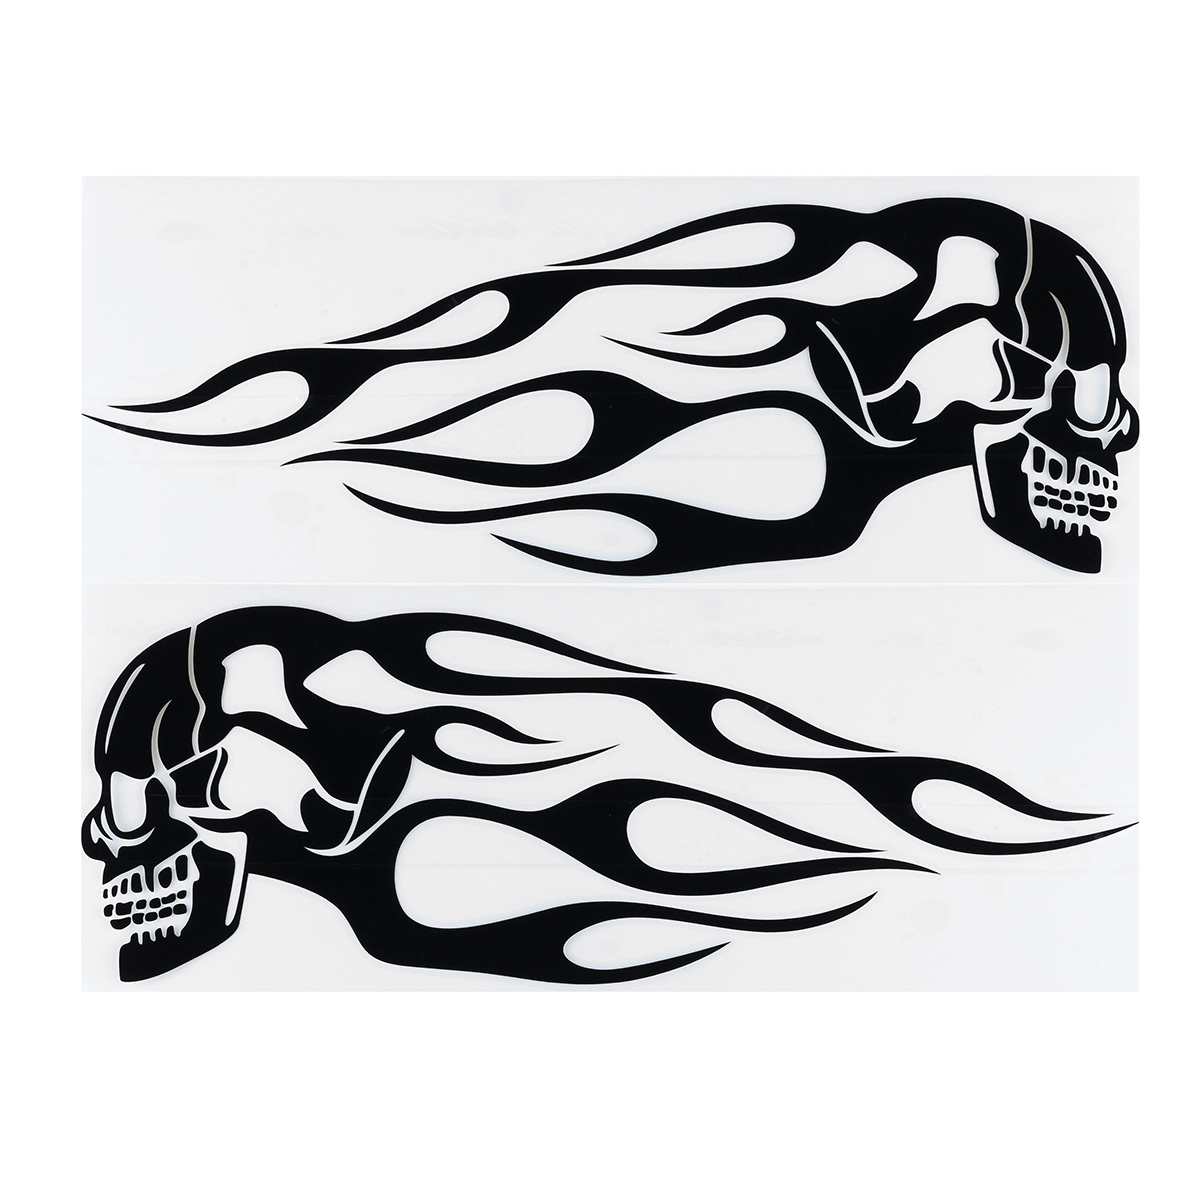 2pcs 13.5x5inch Universal Motorcycle Gas Tank Flames Skull Badge Decal Sticker